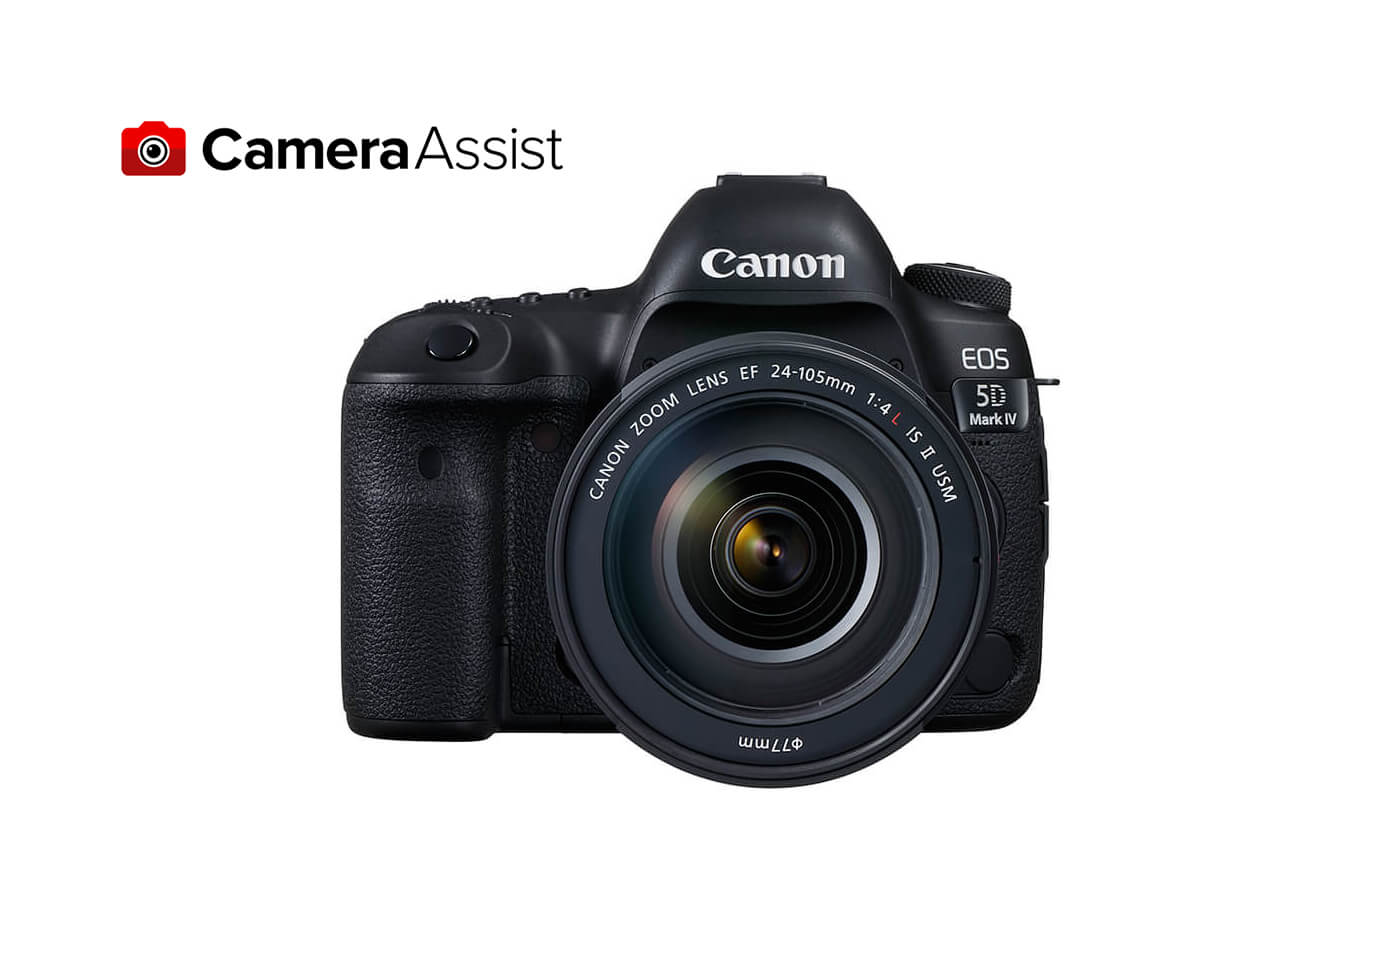 EOS 5D Mark IV front image